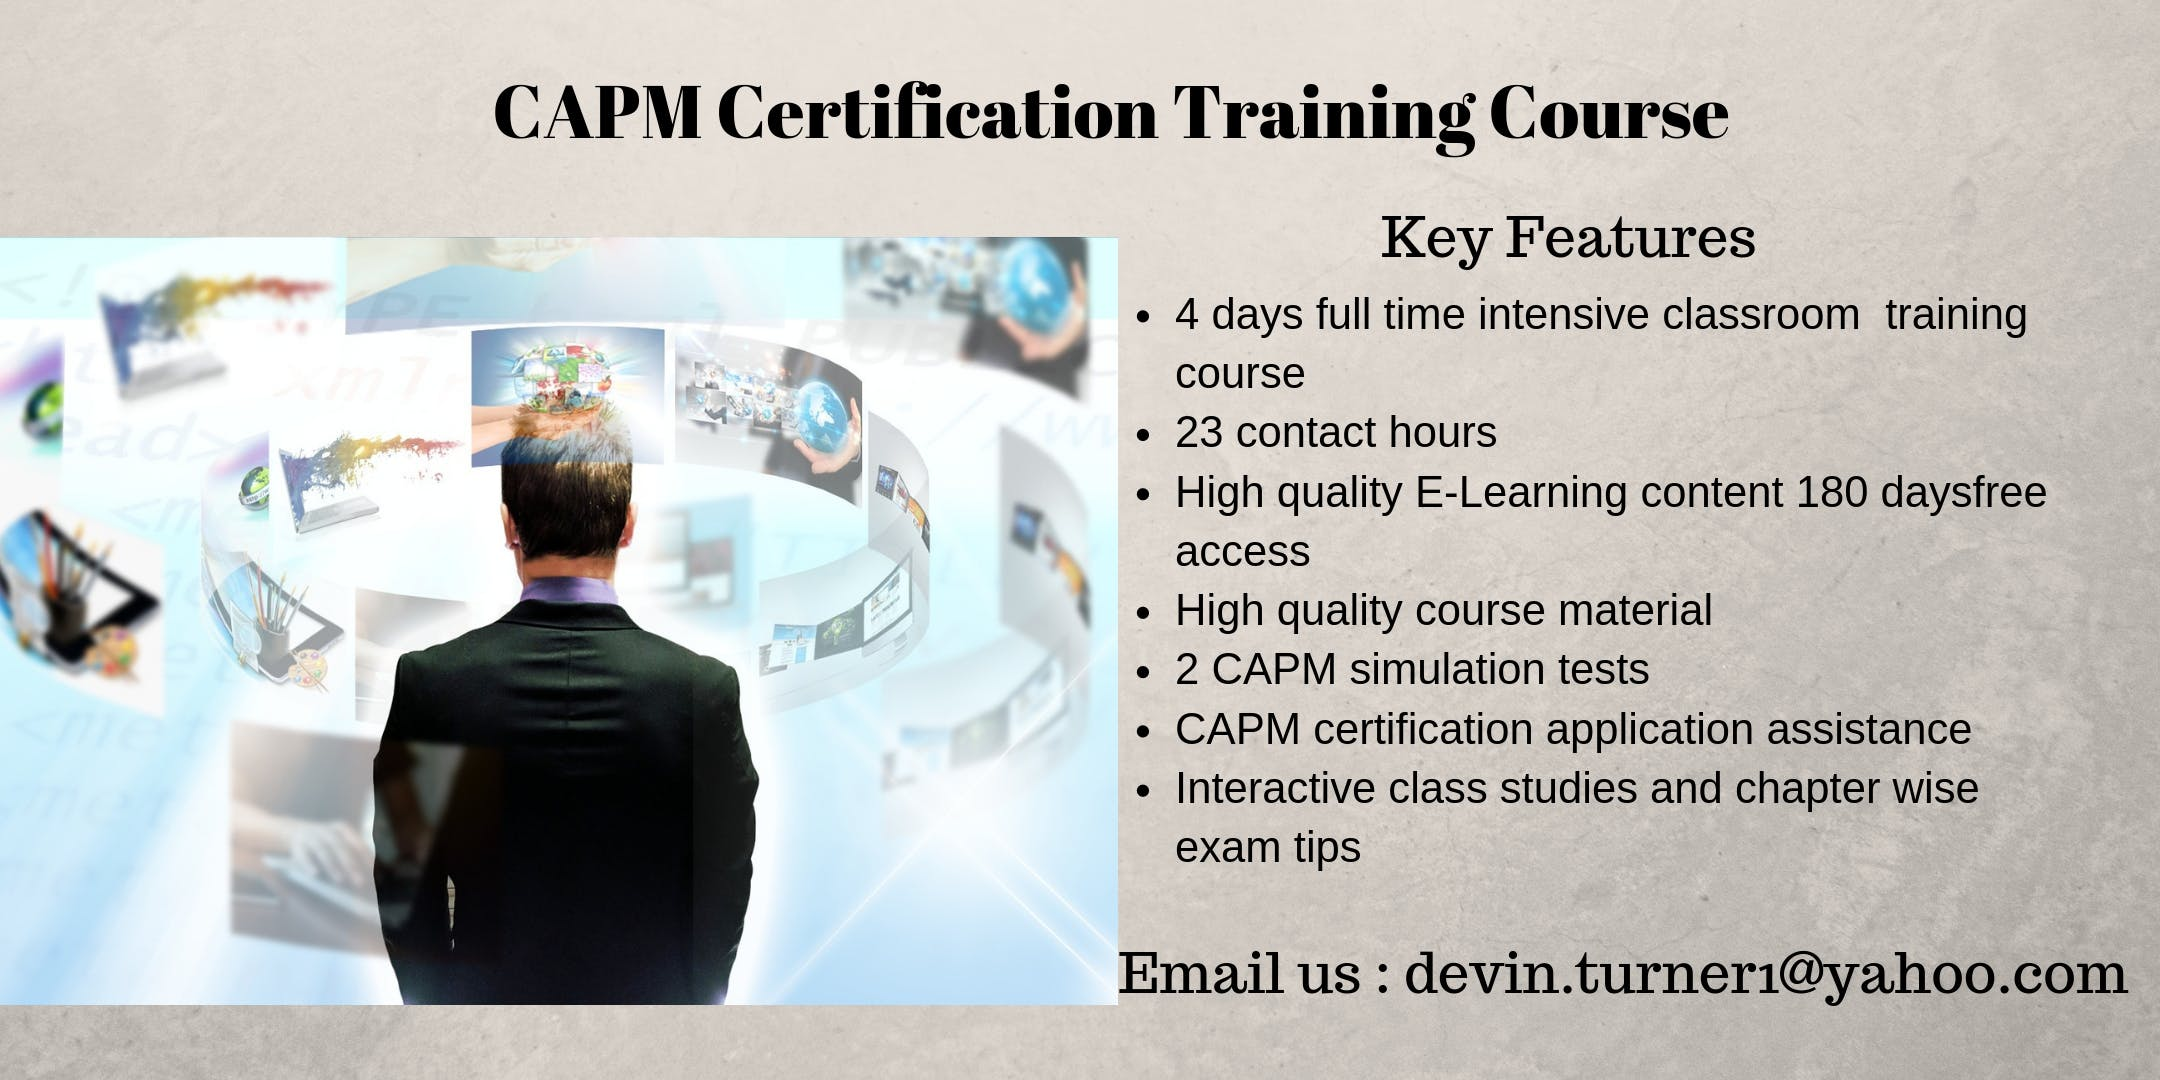 CAPM Certification Course in Kelowna, BC